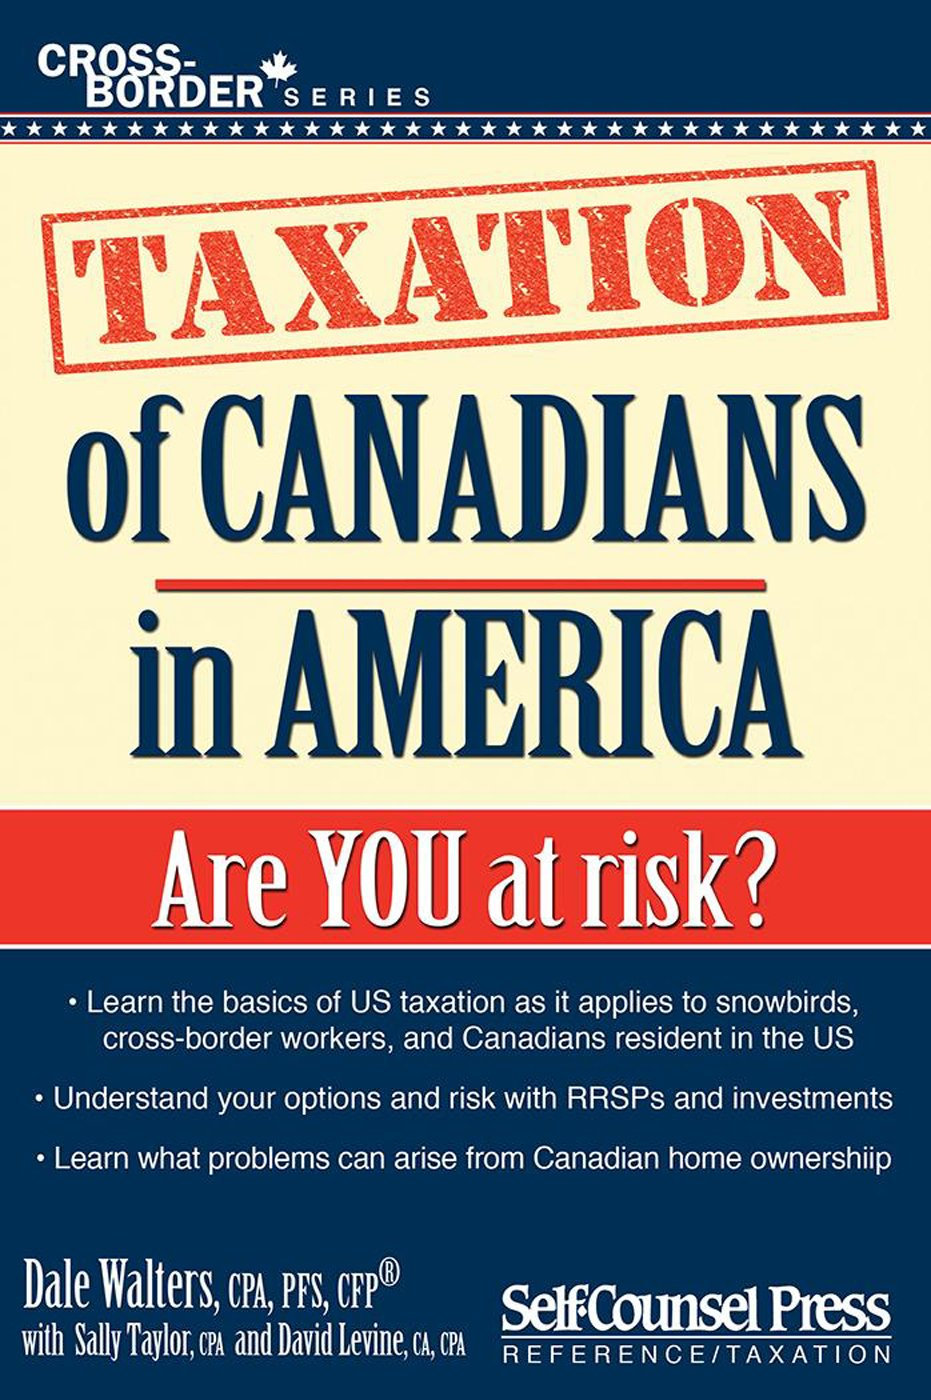 Taxation of Canadians in America Are you at risk?